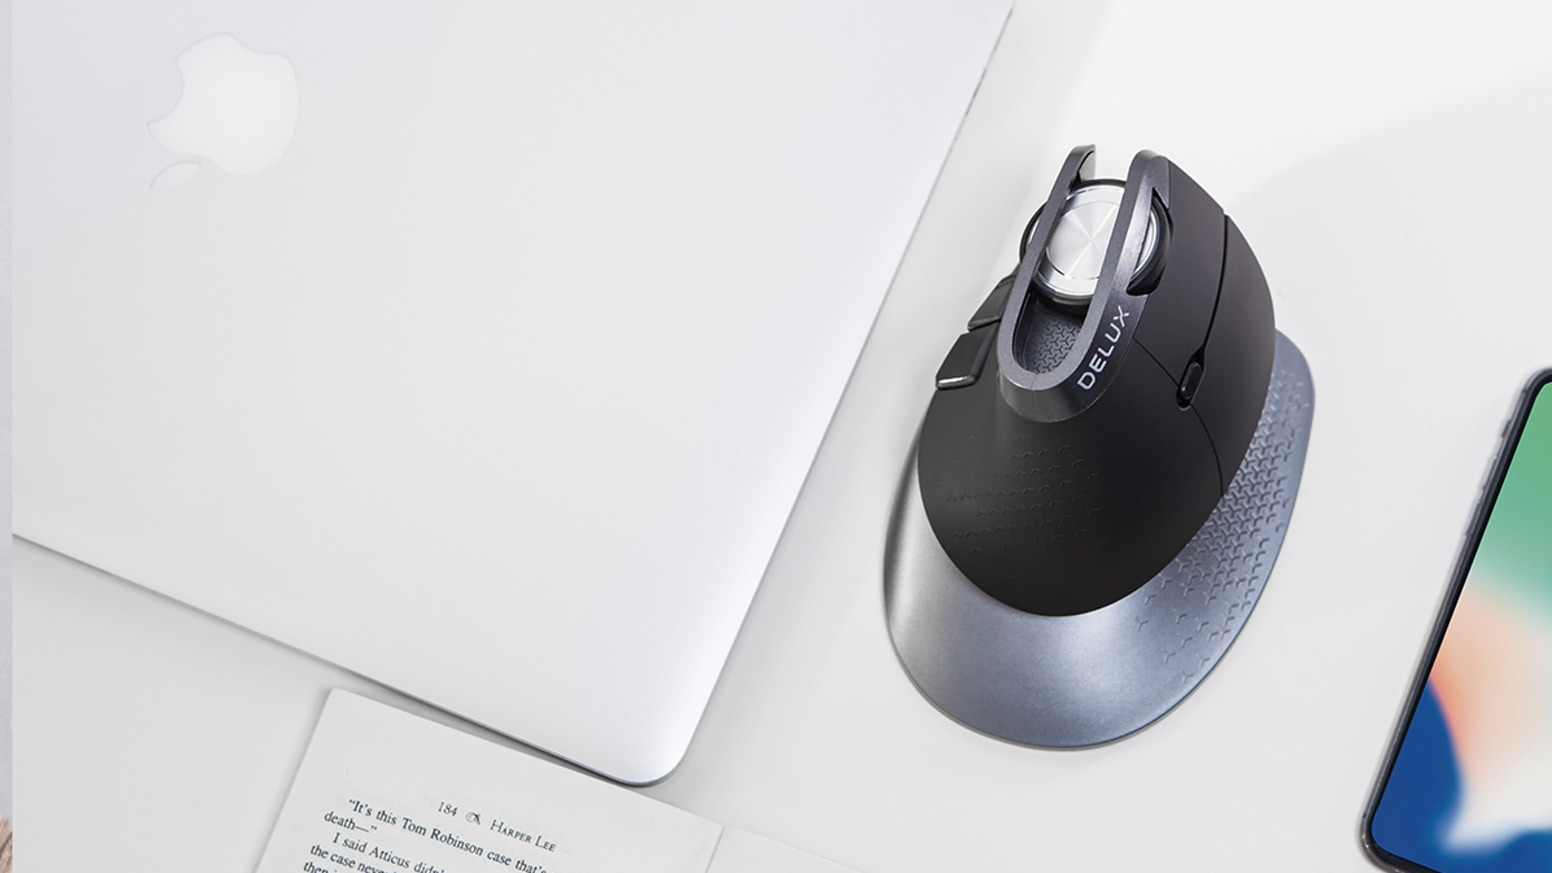 Delux Navee - Best Ergonomic Mouse for Longterm Comfort by